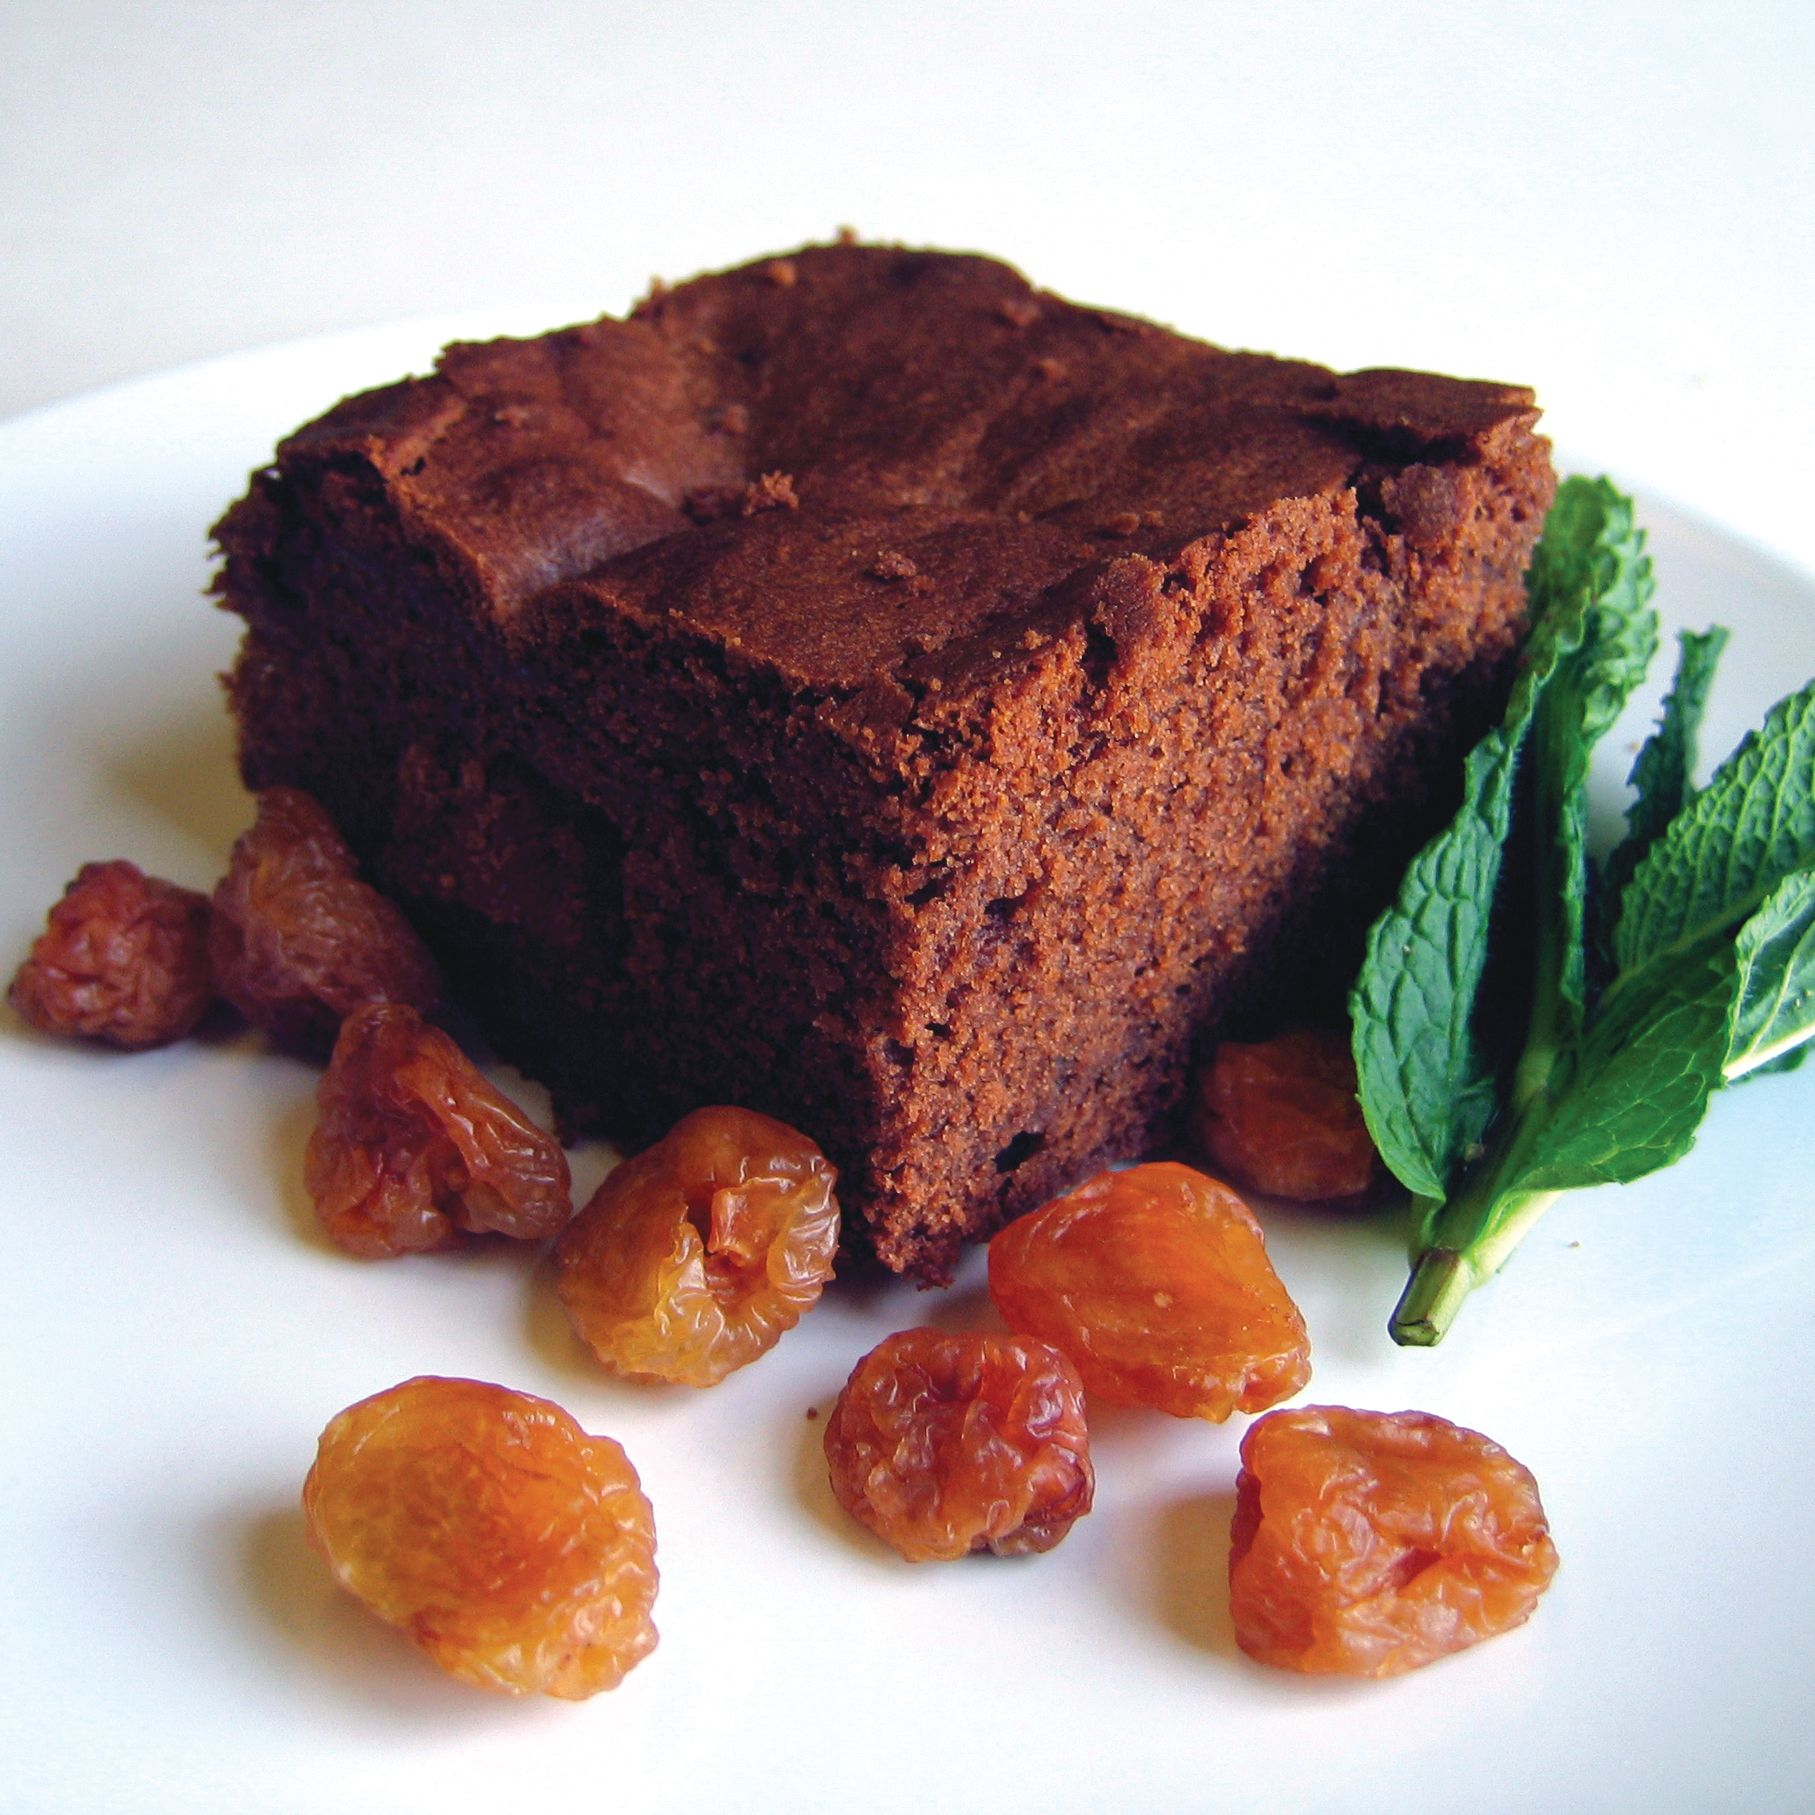 Chocolate Cherry Cake image